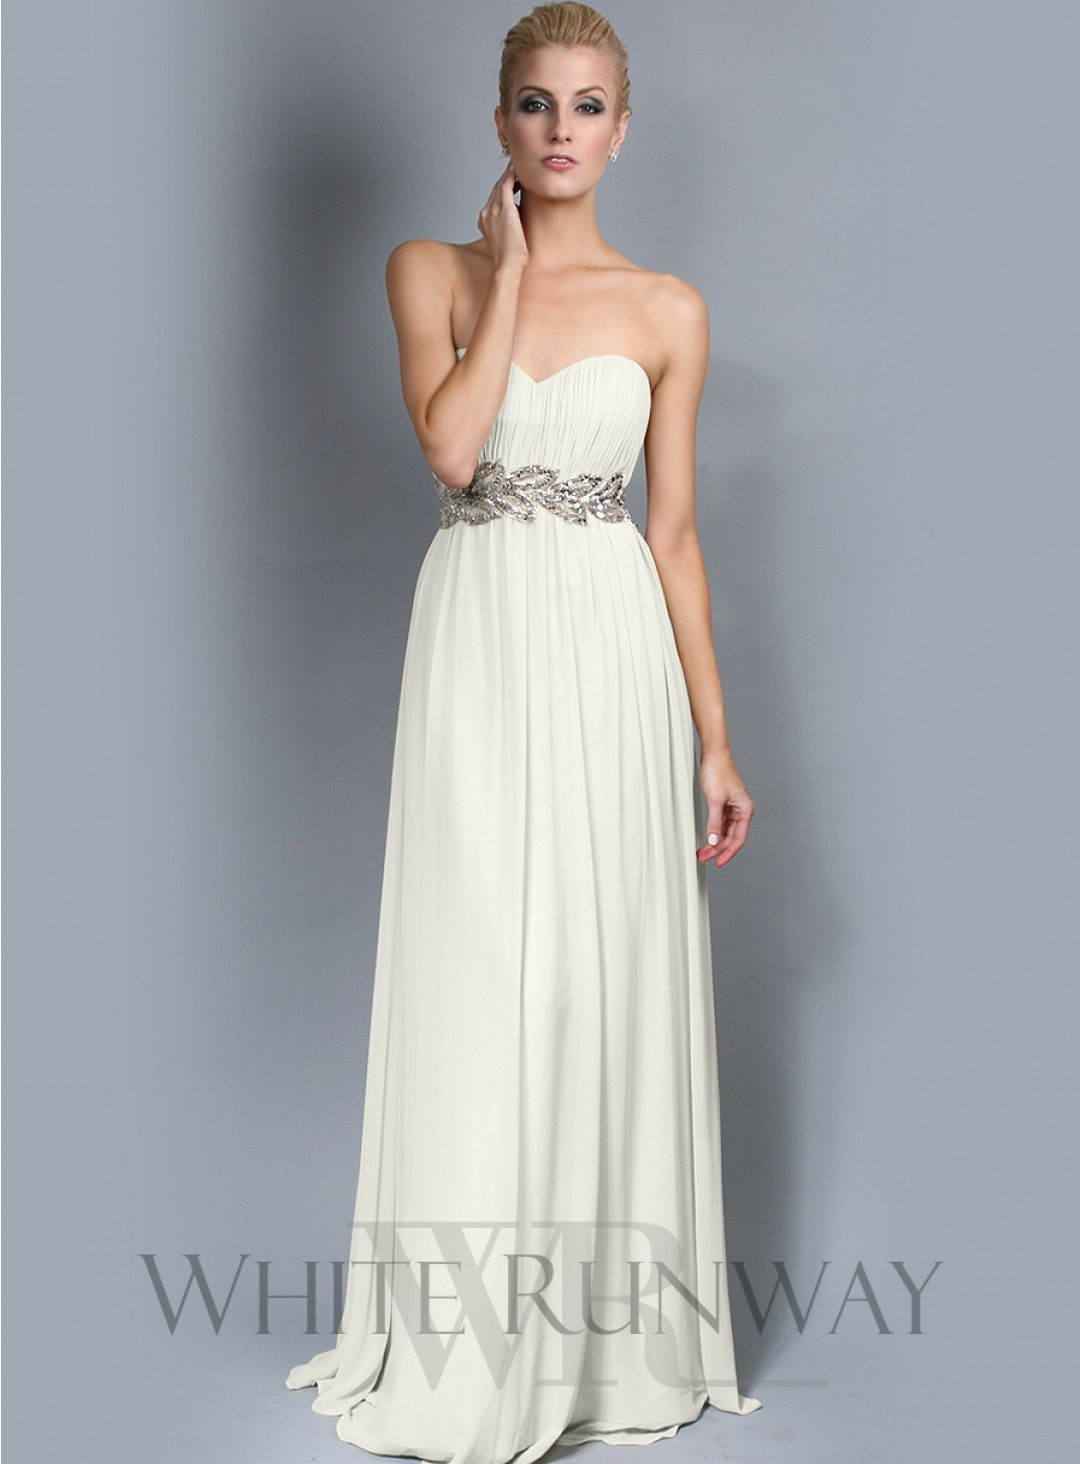 Grecian strapless dress fashion pinterest bridesmaid dresses